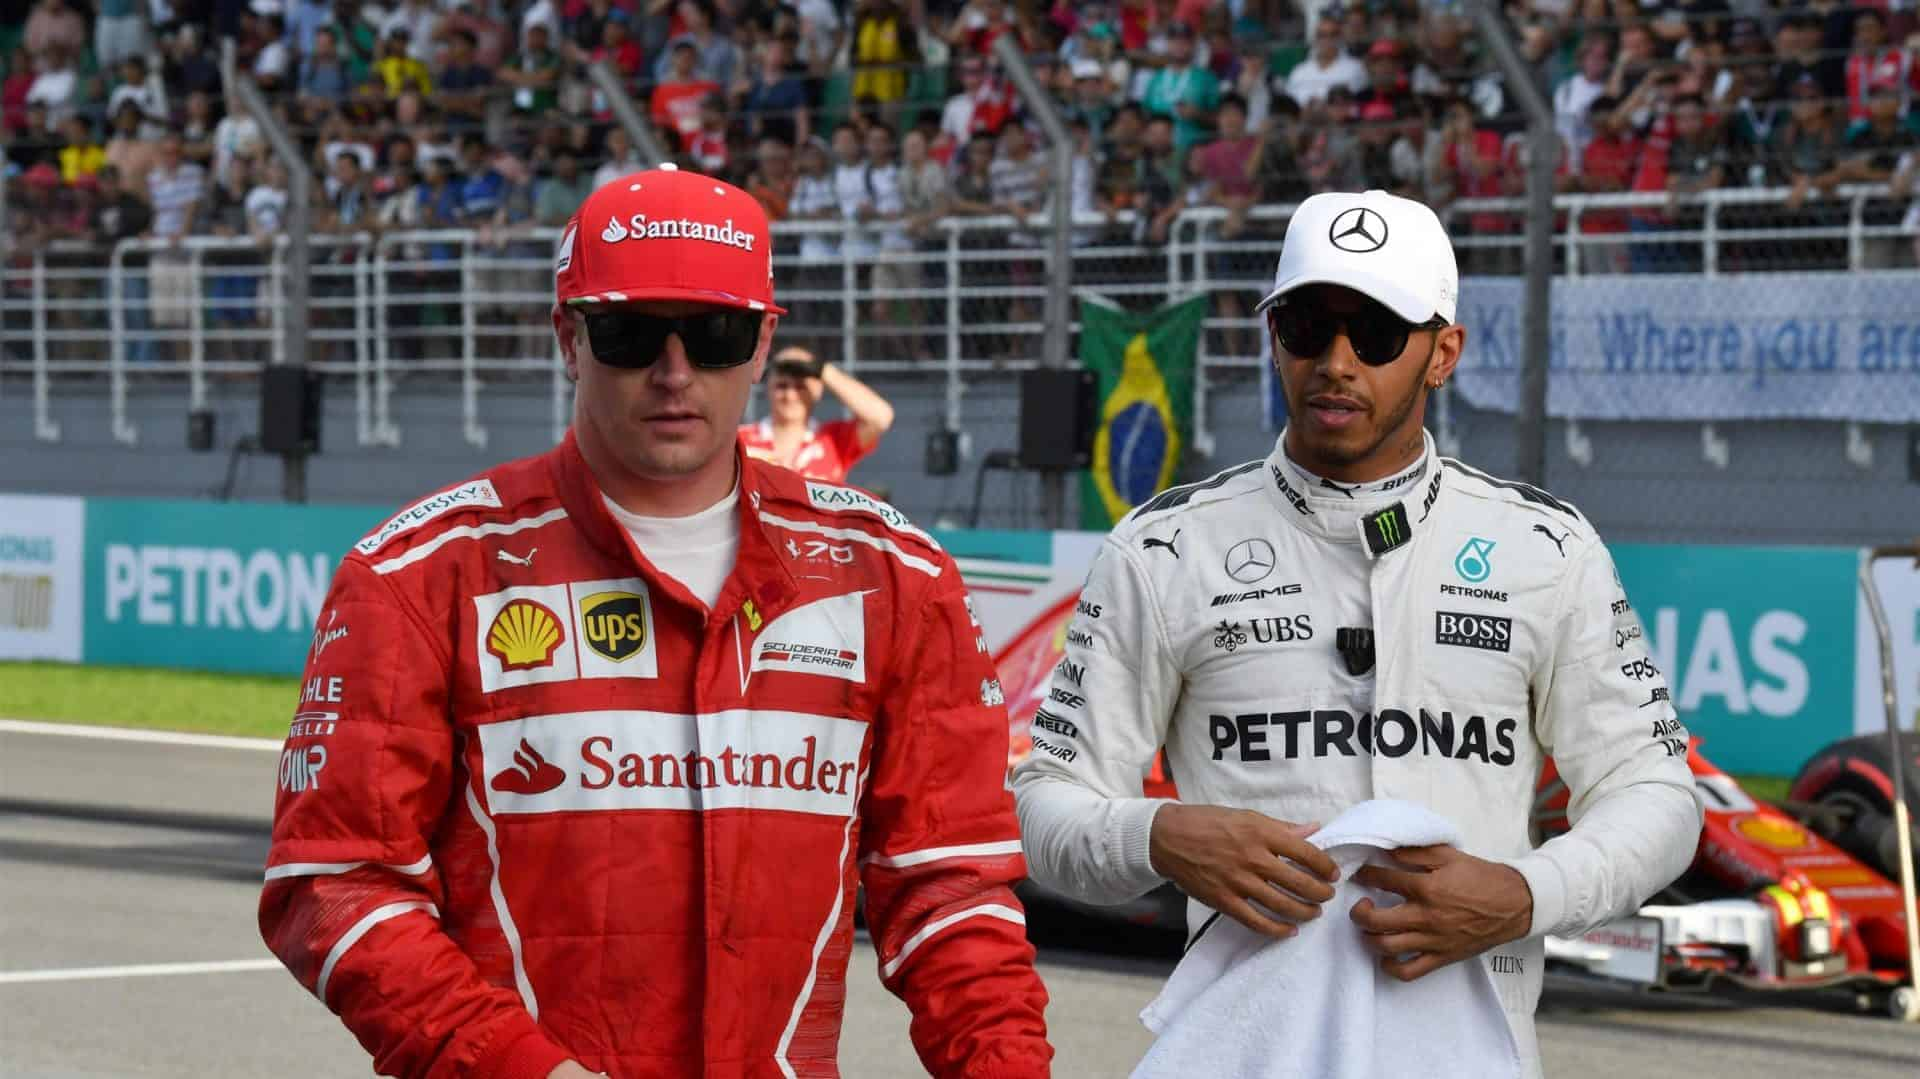 Hamilton Raikkonen F1 2017 on the grid